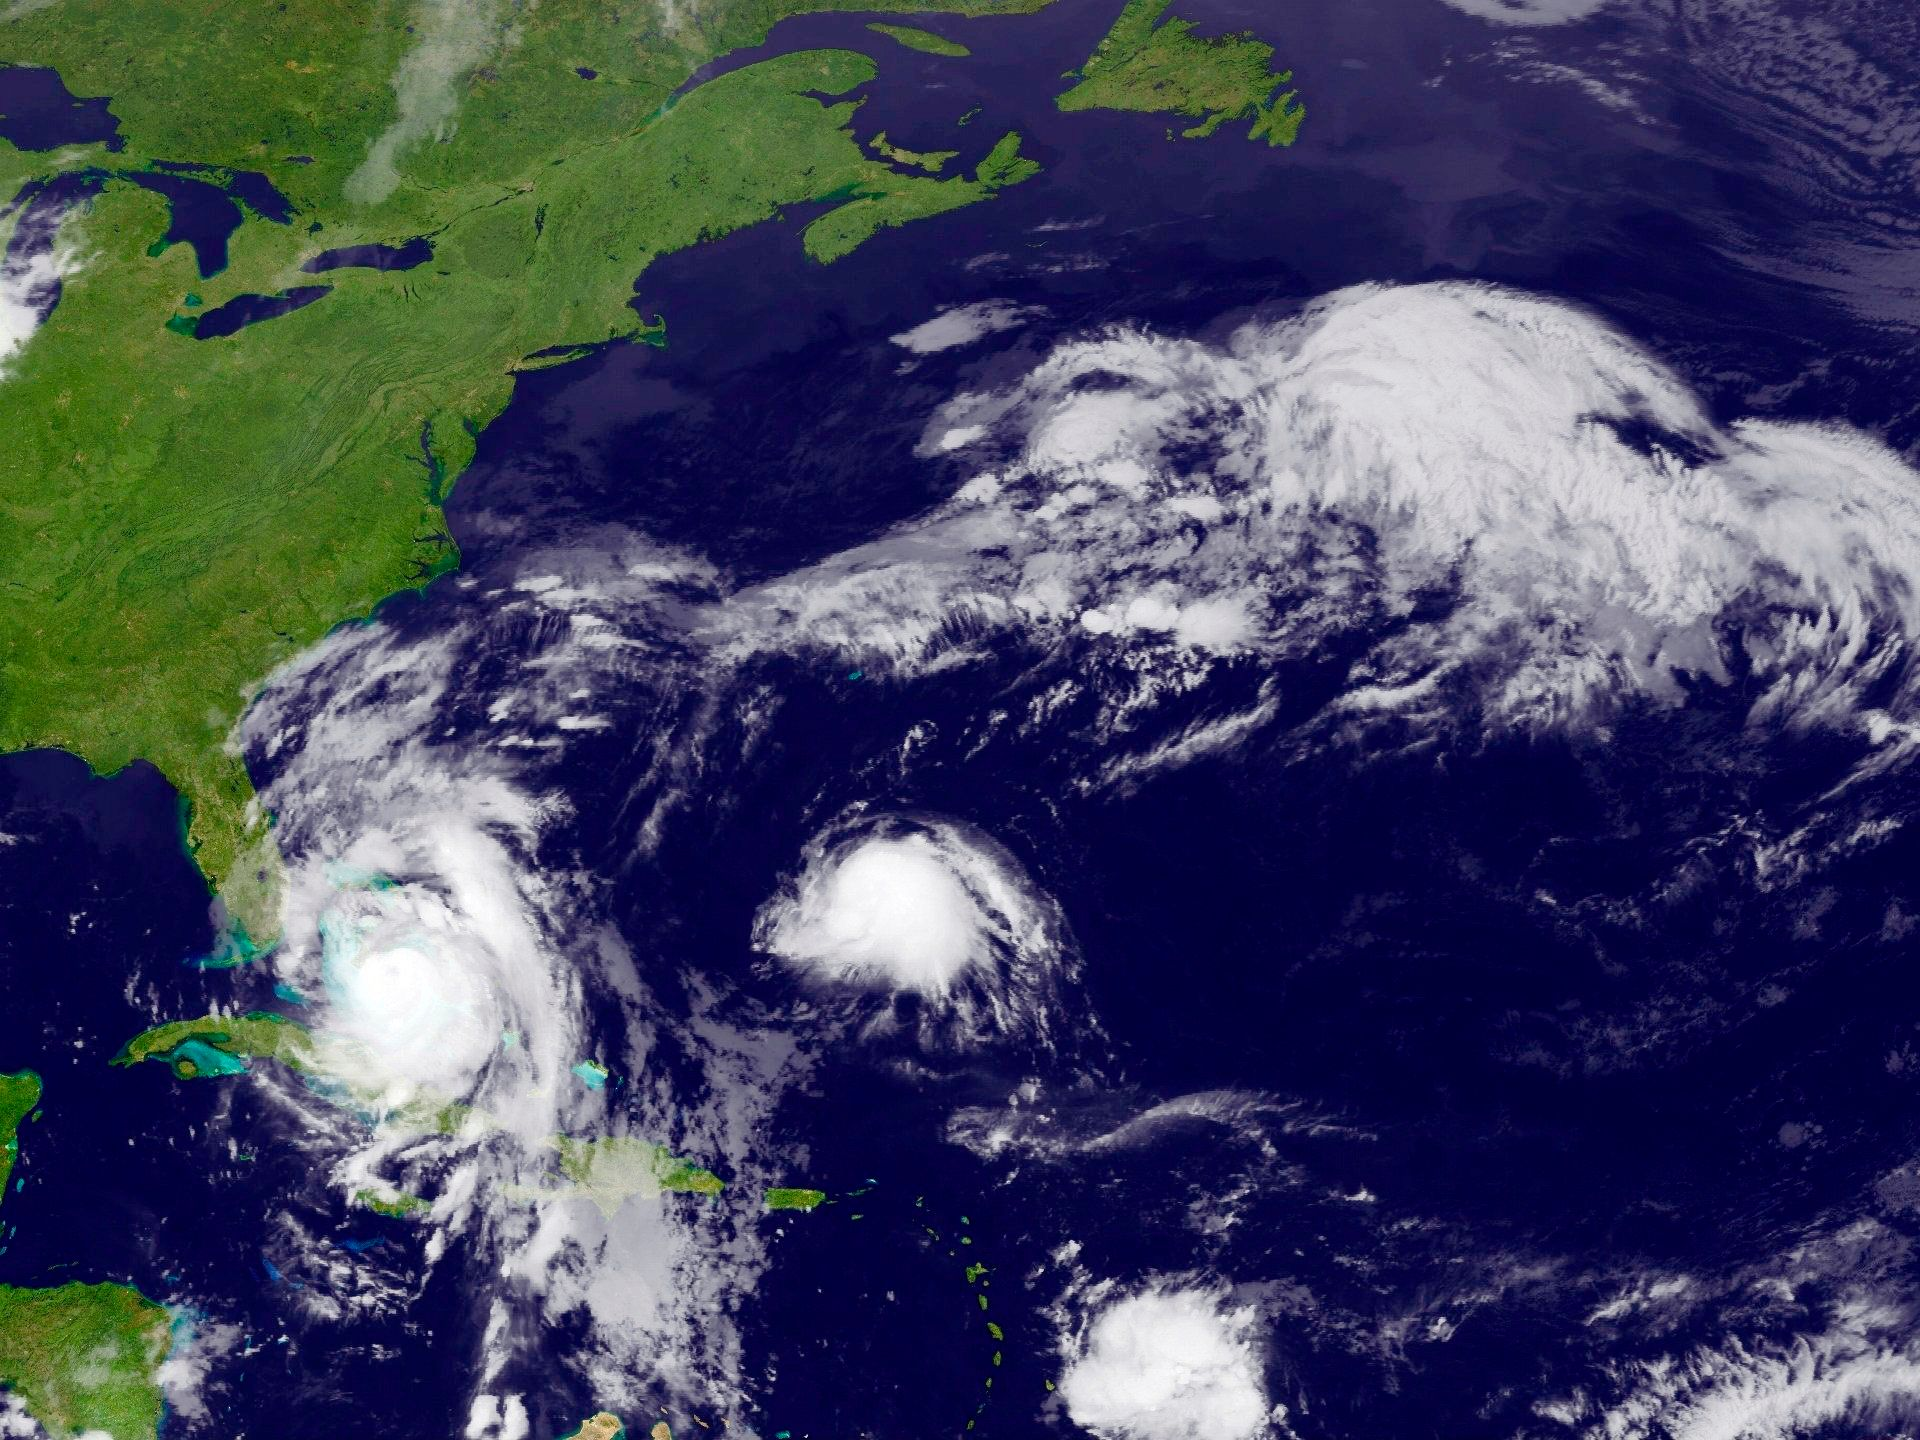 Hurricane Matthew is seen approaching the East Coast of the United States in this image from NOAA's GOES-East satellite taken October 6, 2016.   NOAA/Handout via REUTERS  THIS IMAGE HAS BEEN SUPPLIED BY A THIRD PARTY. IT IS DISTRIBUTED, EXACTLY AS RECEIVED BY REUTERS, AS A SERVICE TO CLIENTS. FOR EDITORIAL USE ONLY. NOT FOR SALE FOR MARKETING OR ADVERTISING CAMPAIGNS